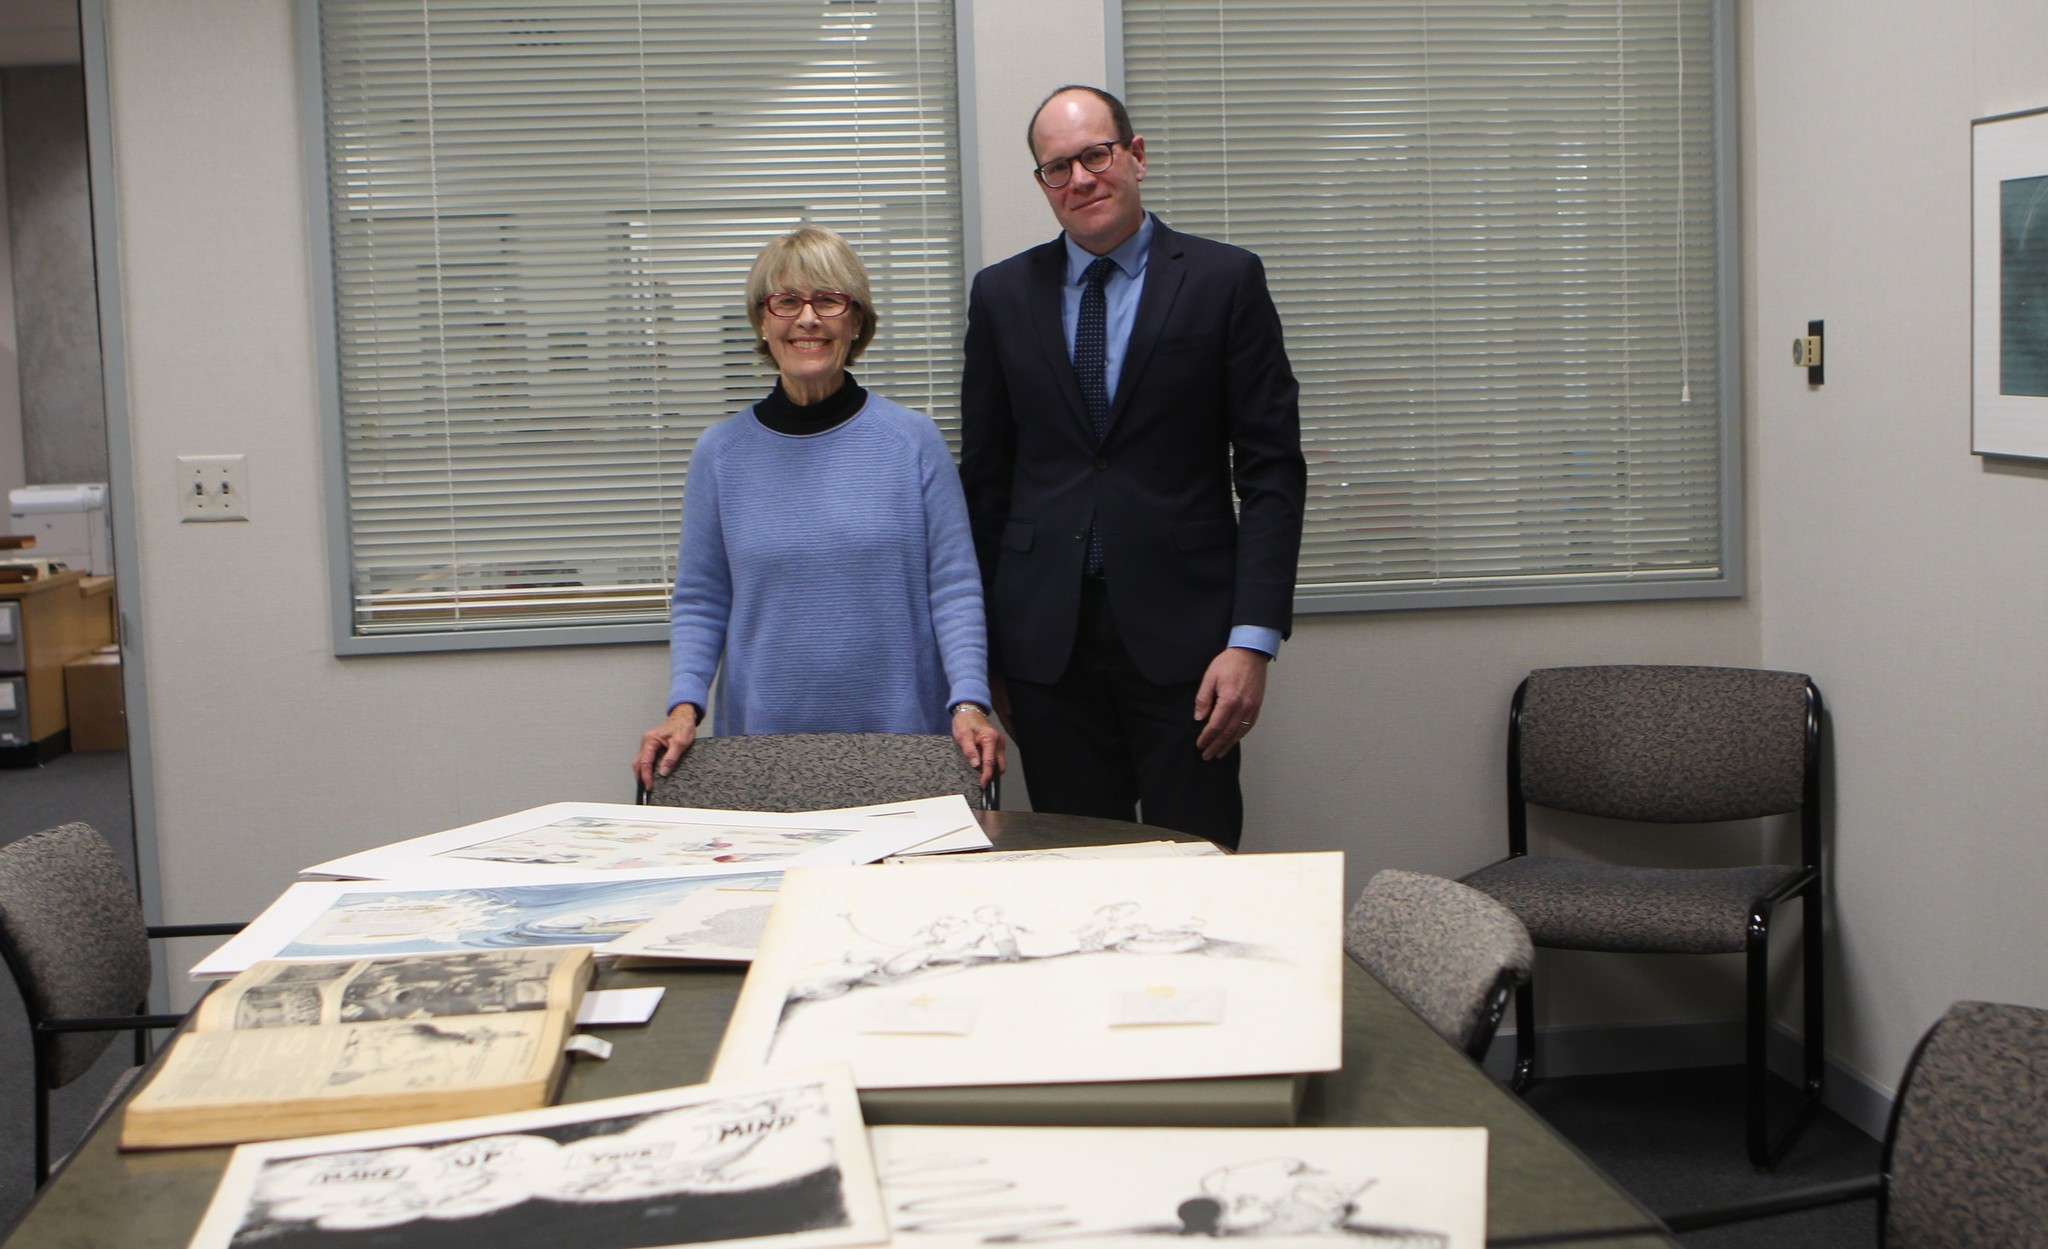 Lynda Claasen and Erik Mitchell are the proud guardians of the Dr. Seuss collection.